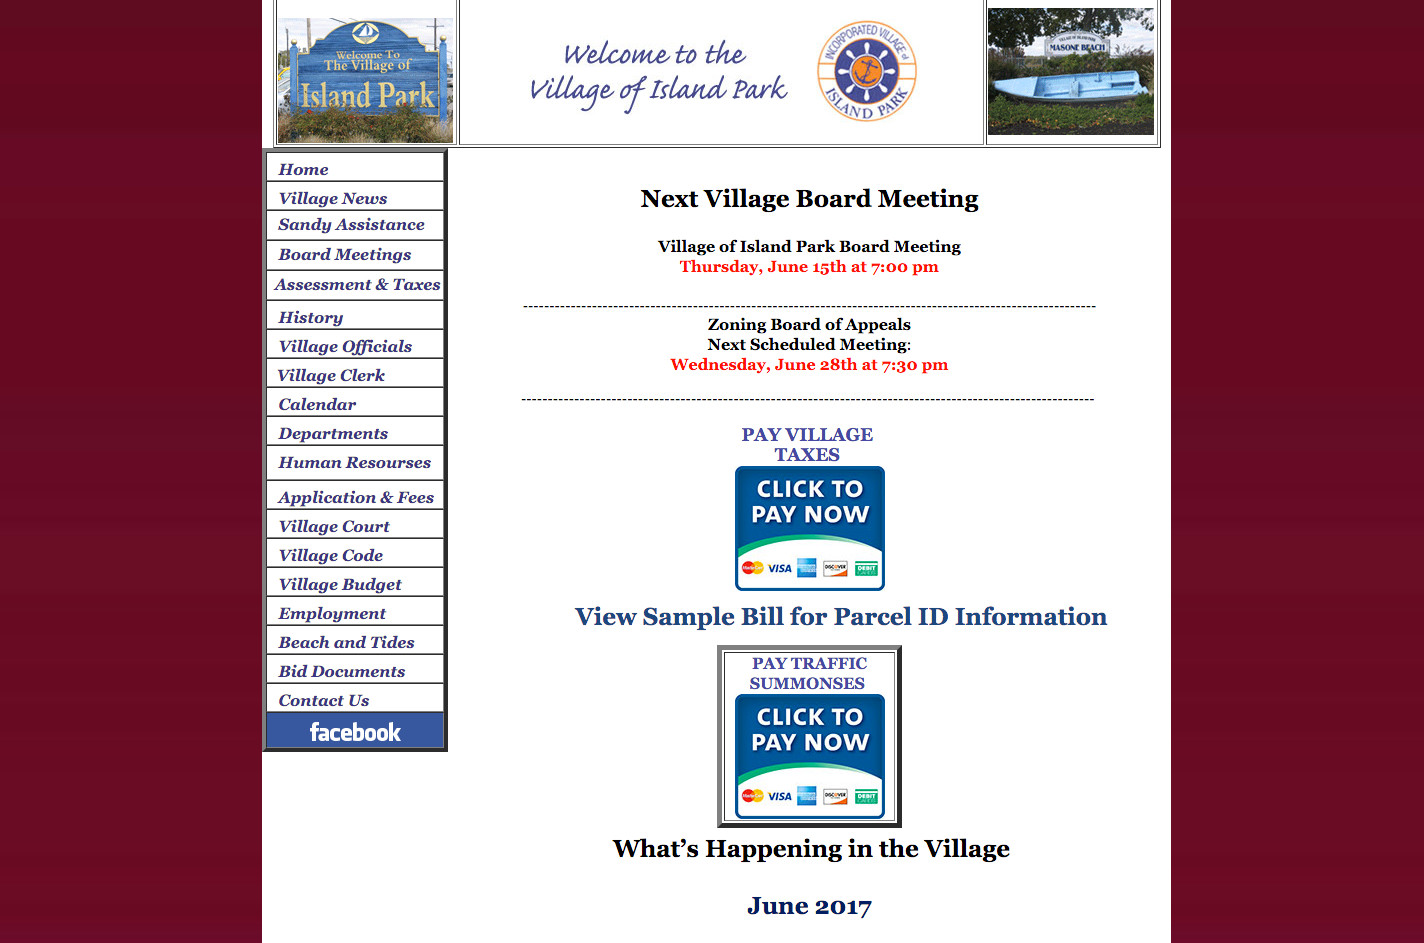 Village residents now have the option to pay their taxes online and with a credit card.